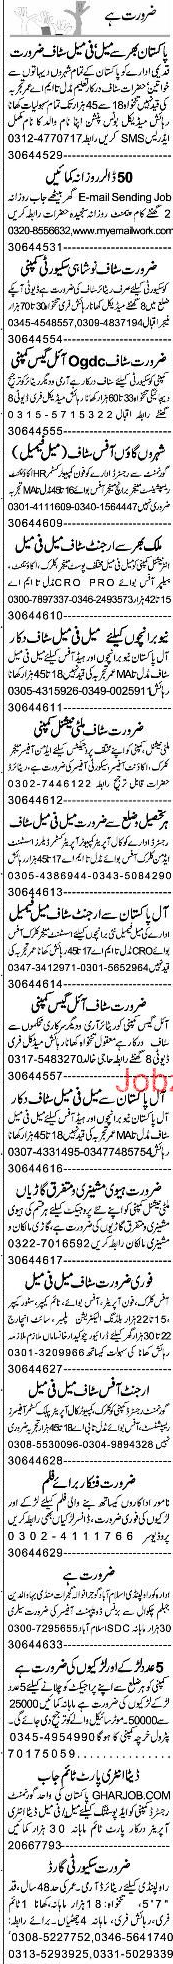 Branch Manager, Accountant, Office Boys Job Opportunity